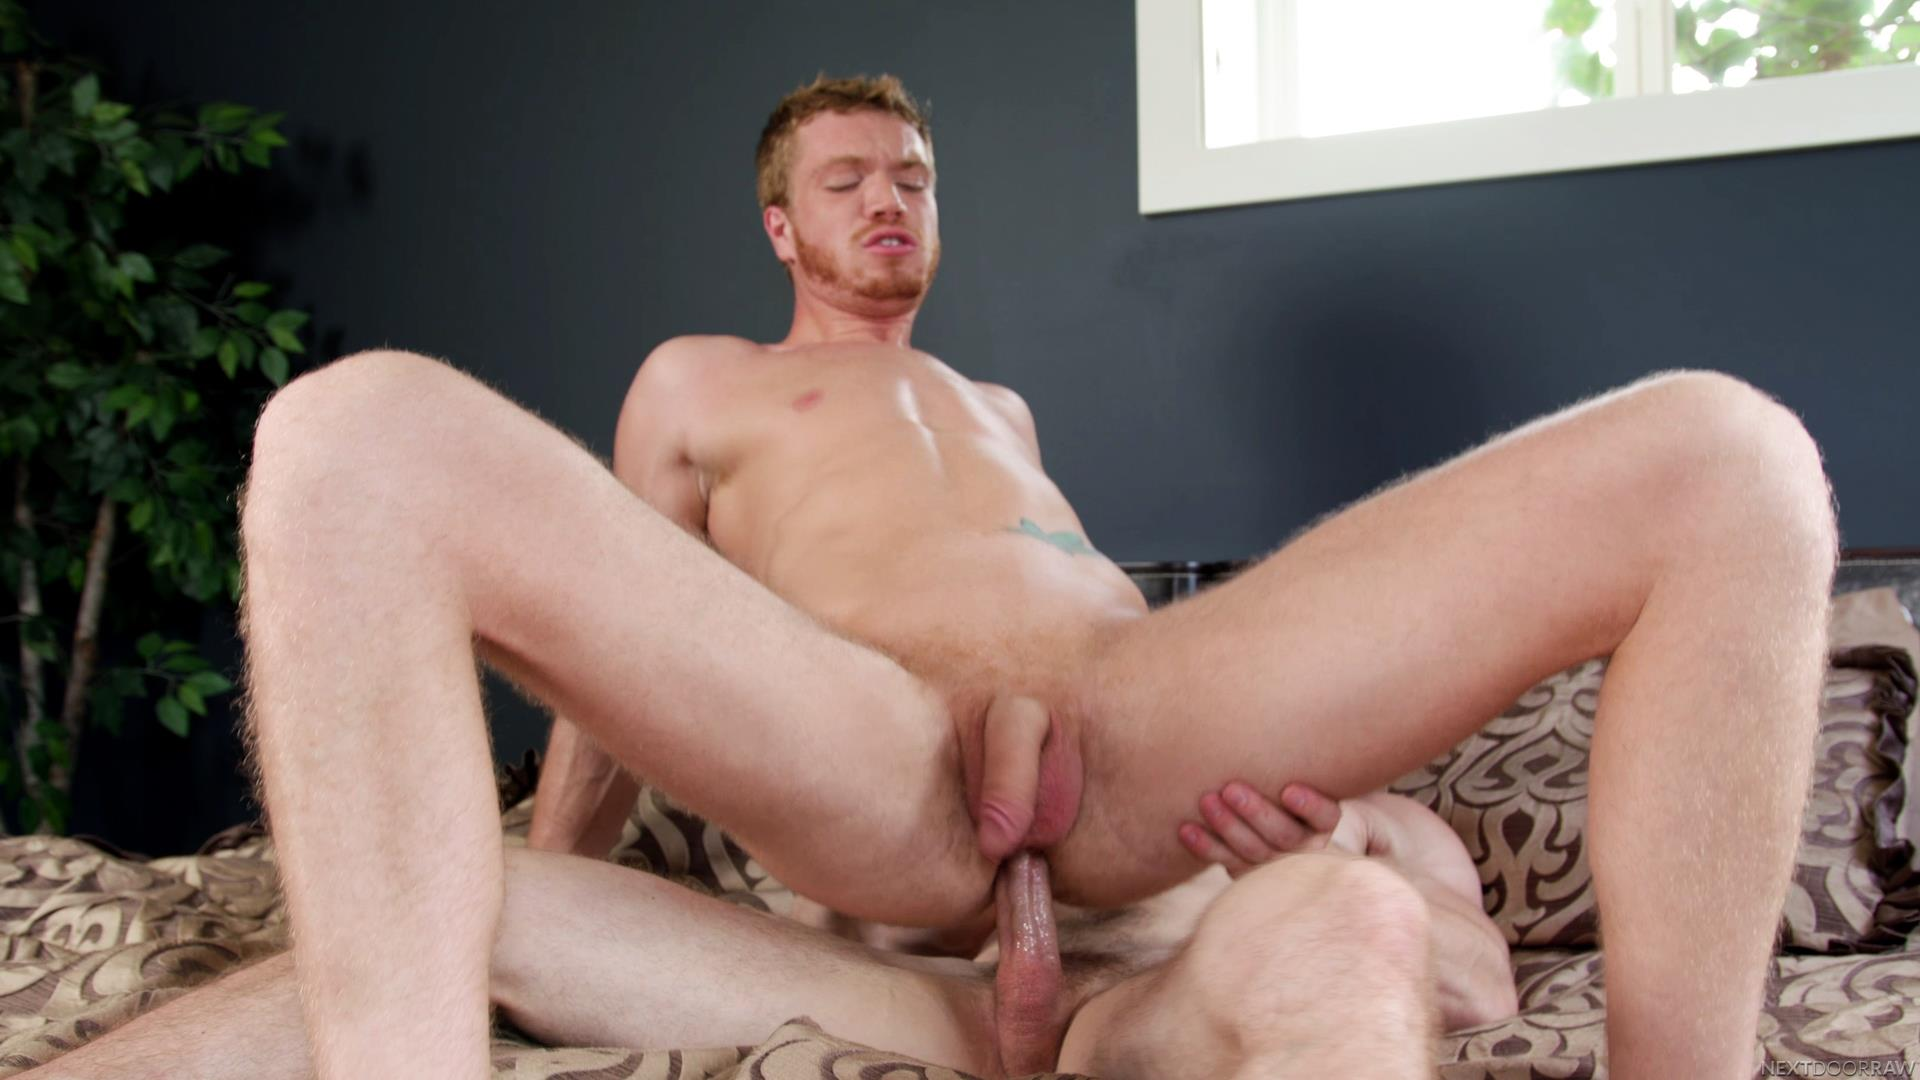 Next-Door-Raw-Markie-More-and-Dacotah-Red-Big-Dick-gingers-fucking-bareback-13 Ginger Boyfriends Markie More and Dacotah Red Share A Bareback Fuck